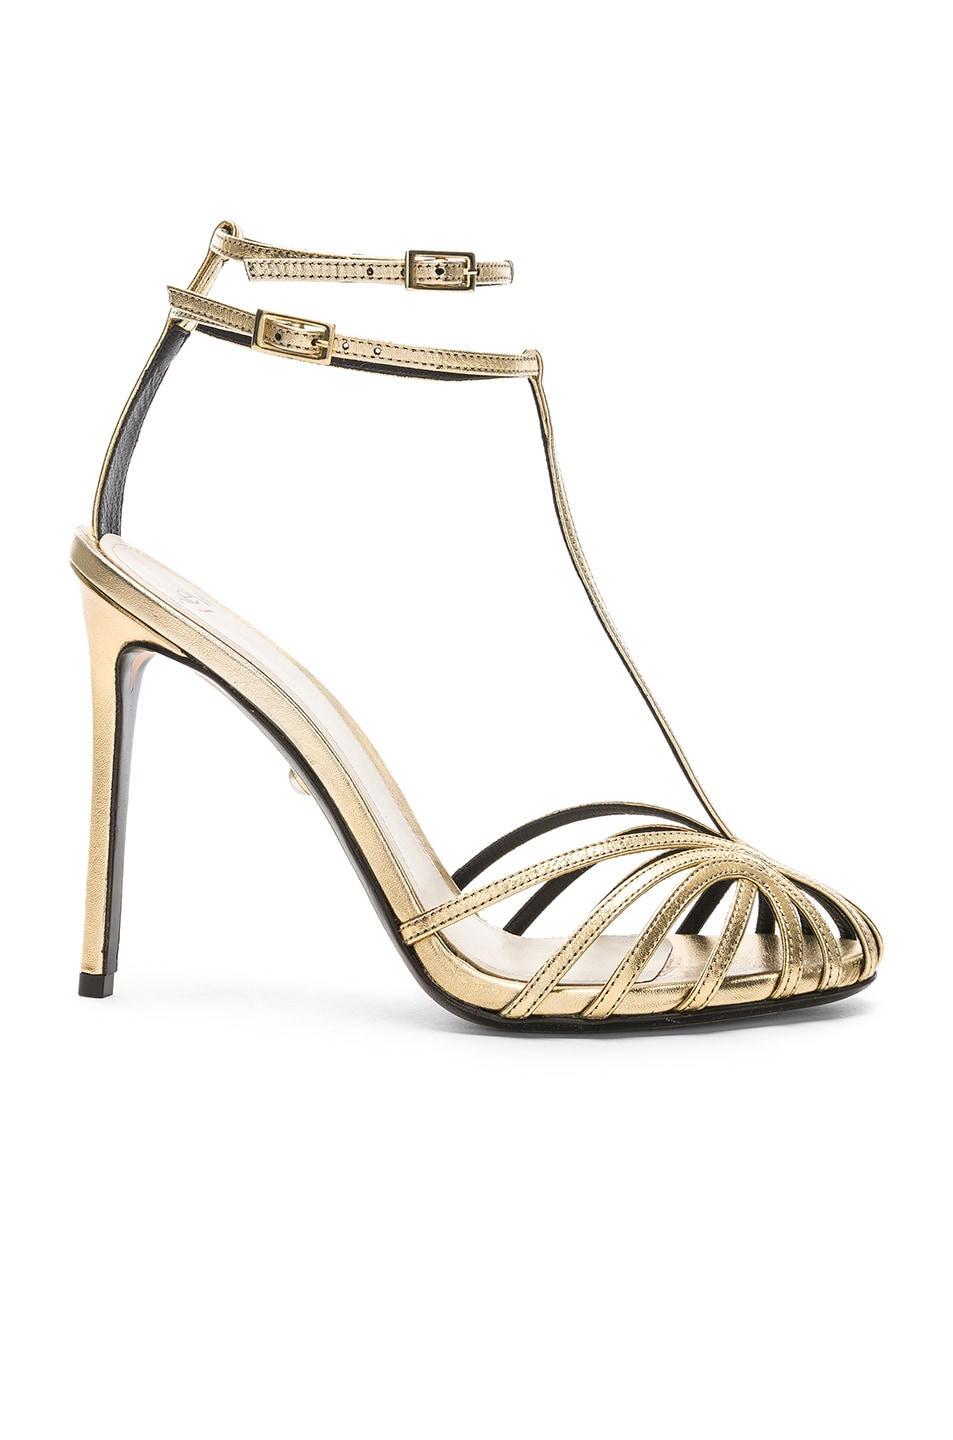 Image 1 of ALEVI Milano Alevi Stella Sandal in Shine Light Gold